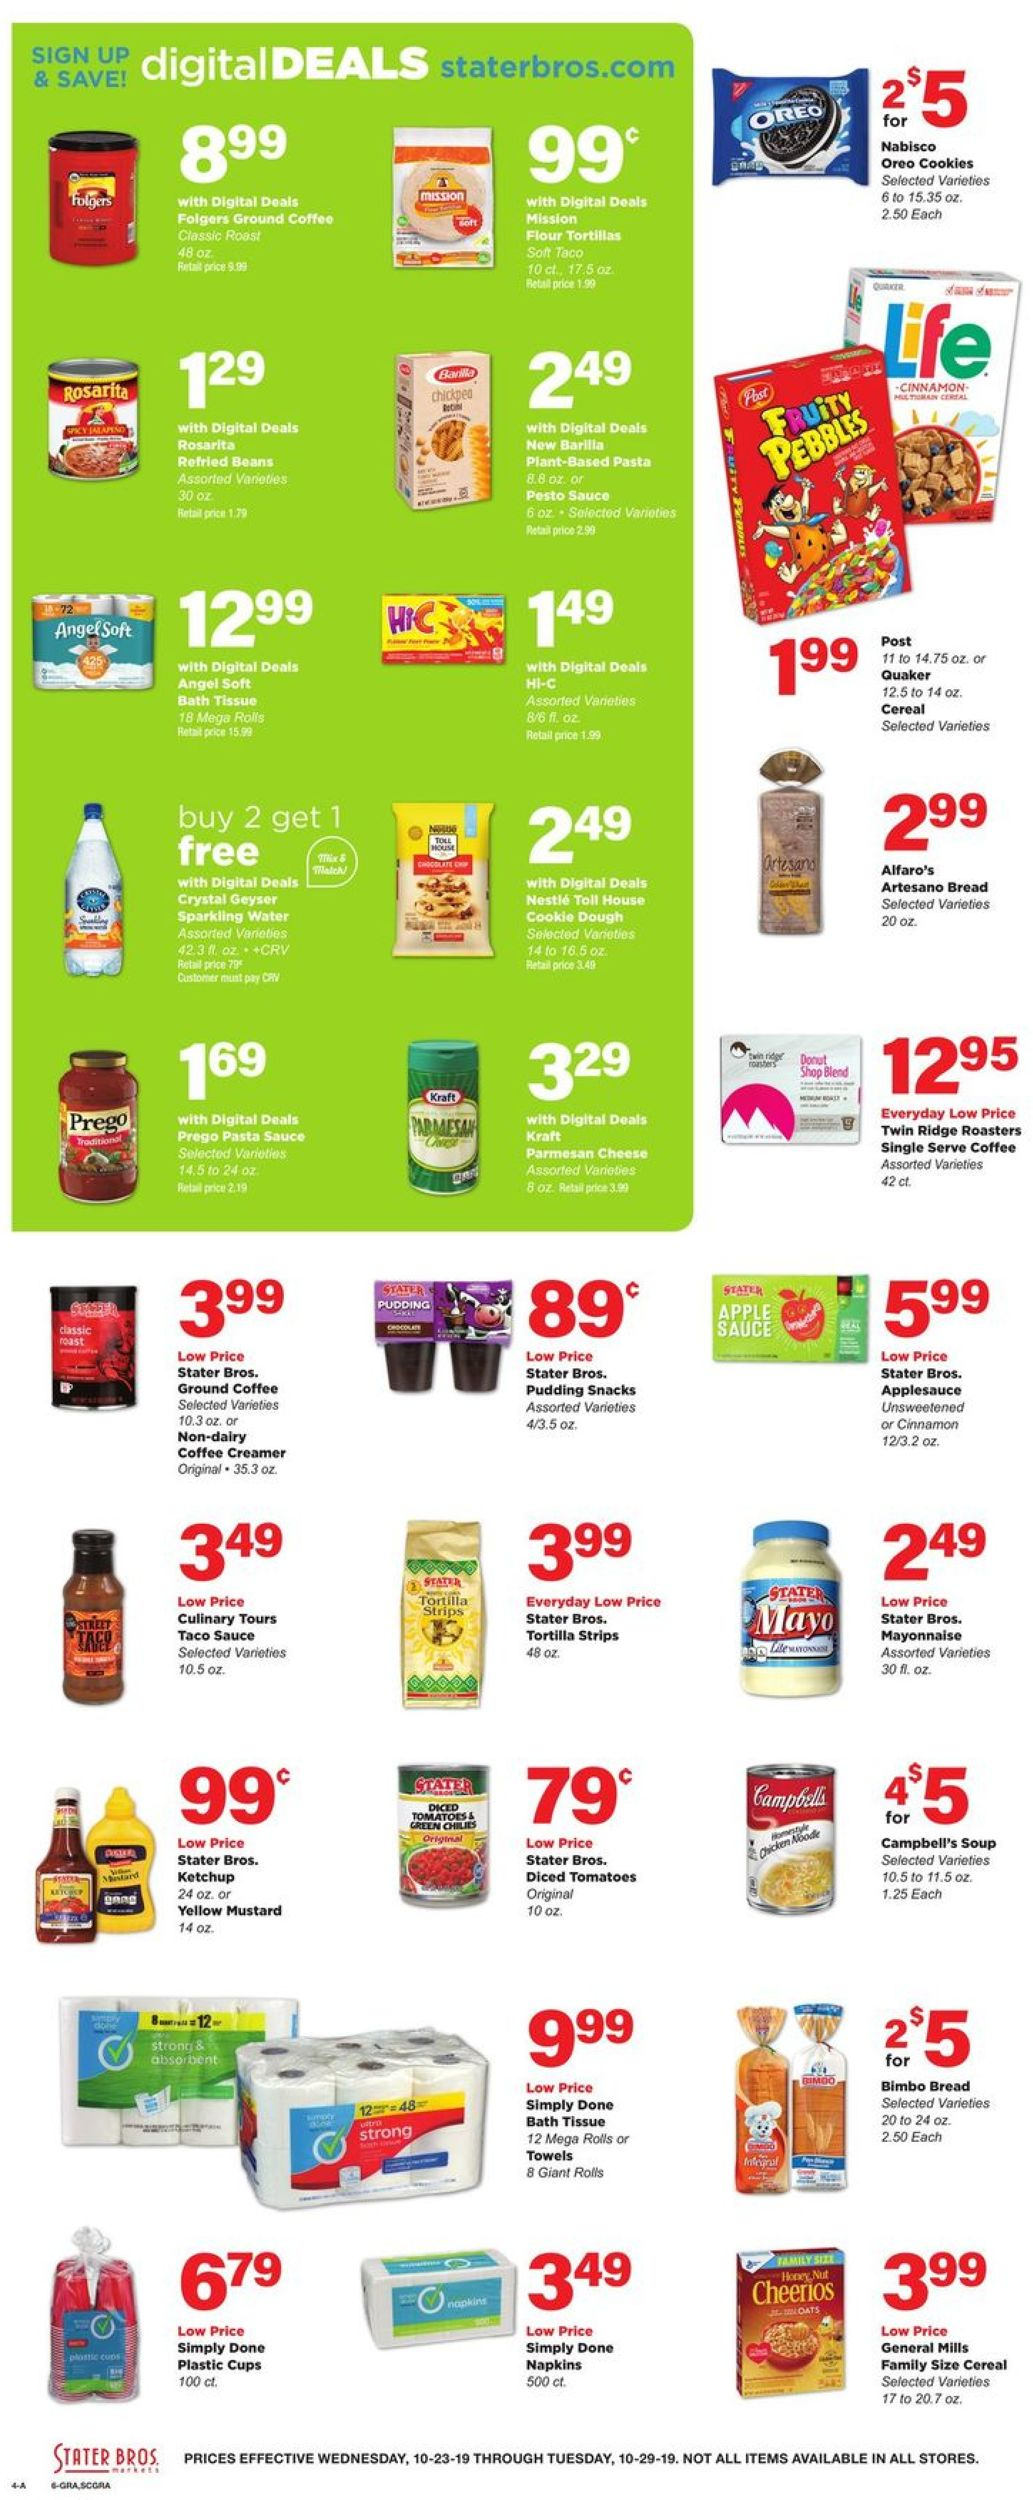 Stater Bros Current Weekly Ad 10 23 10 29 2019 4 Frequent Ads Com